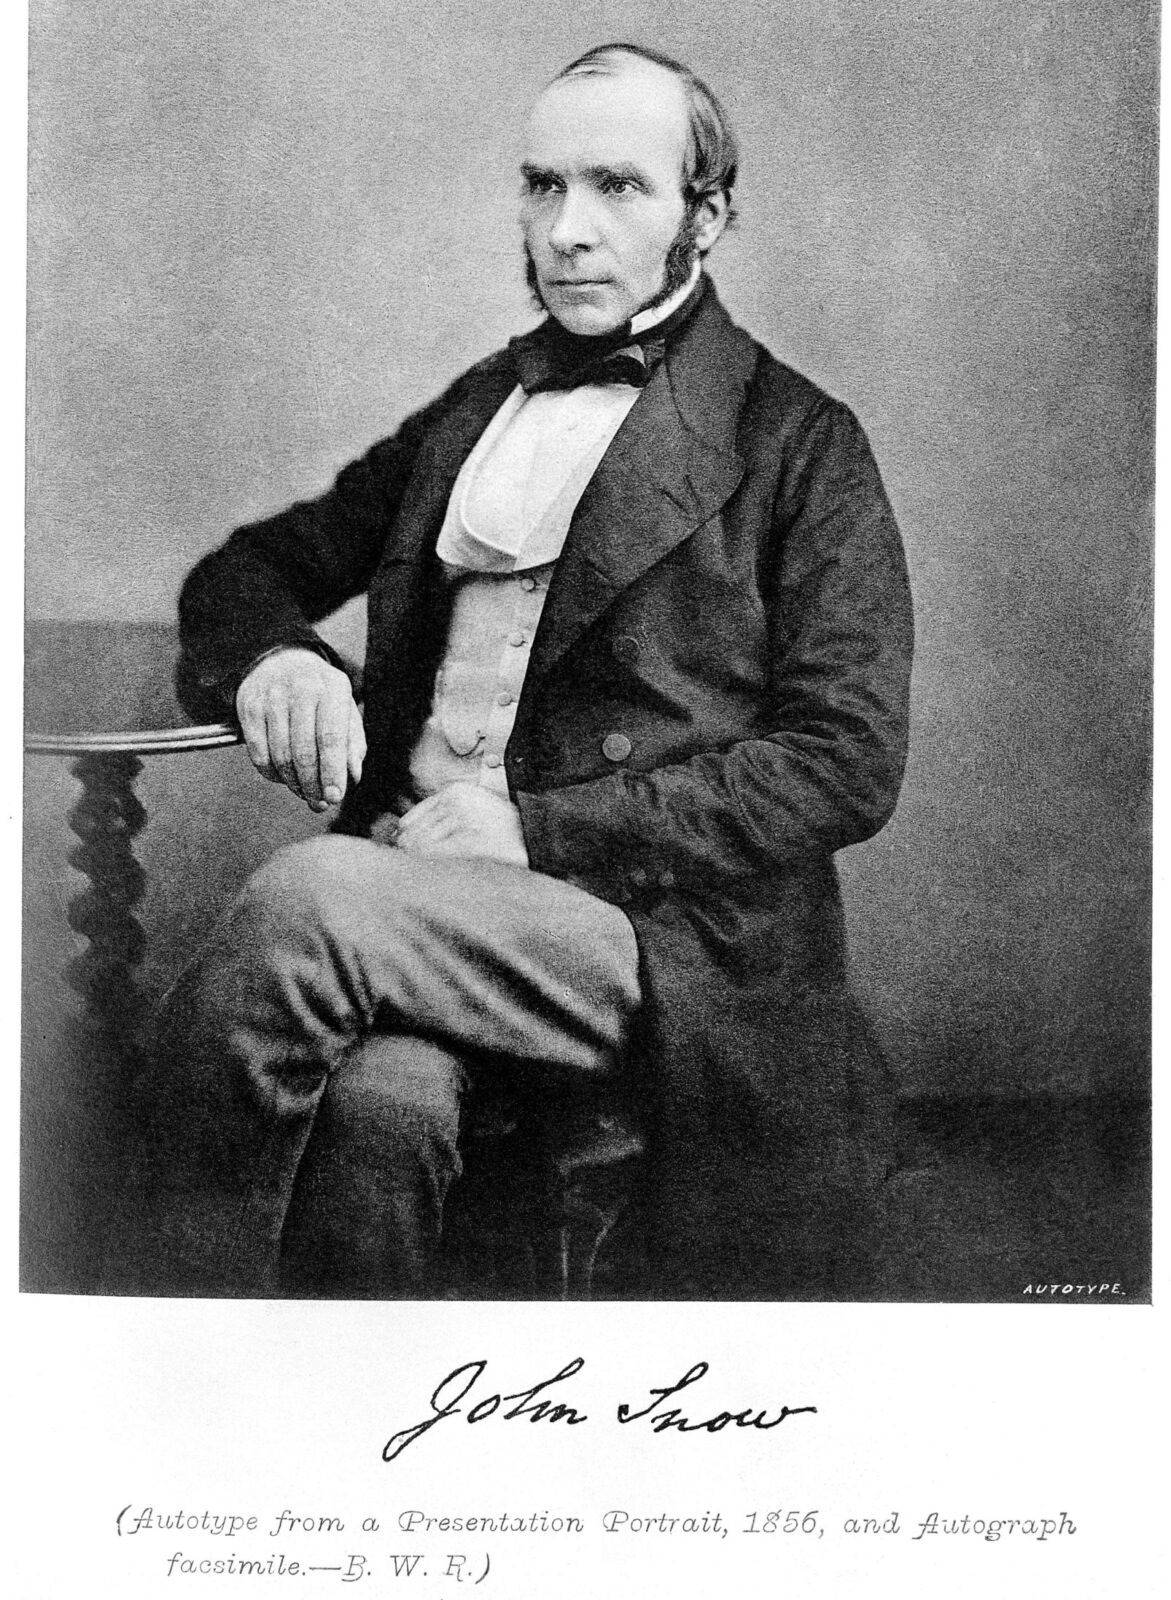 Black and white portrait of a middle-aged man with a light skin tone dressed in formal wear seated with a neutral expression looking off to the left